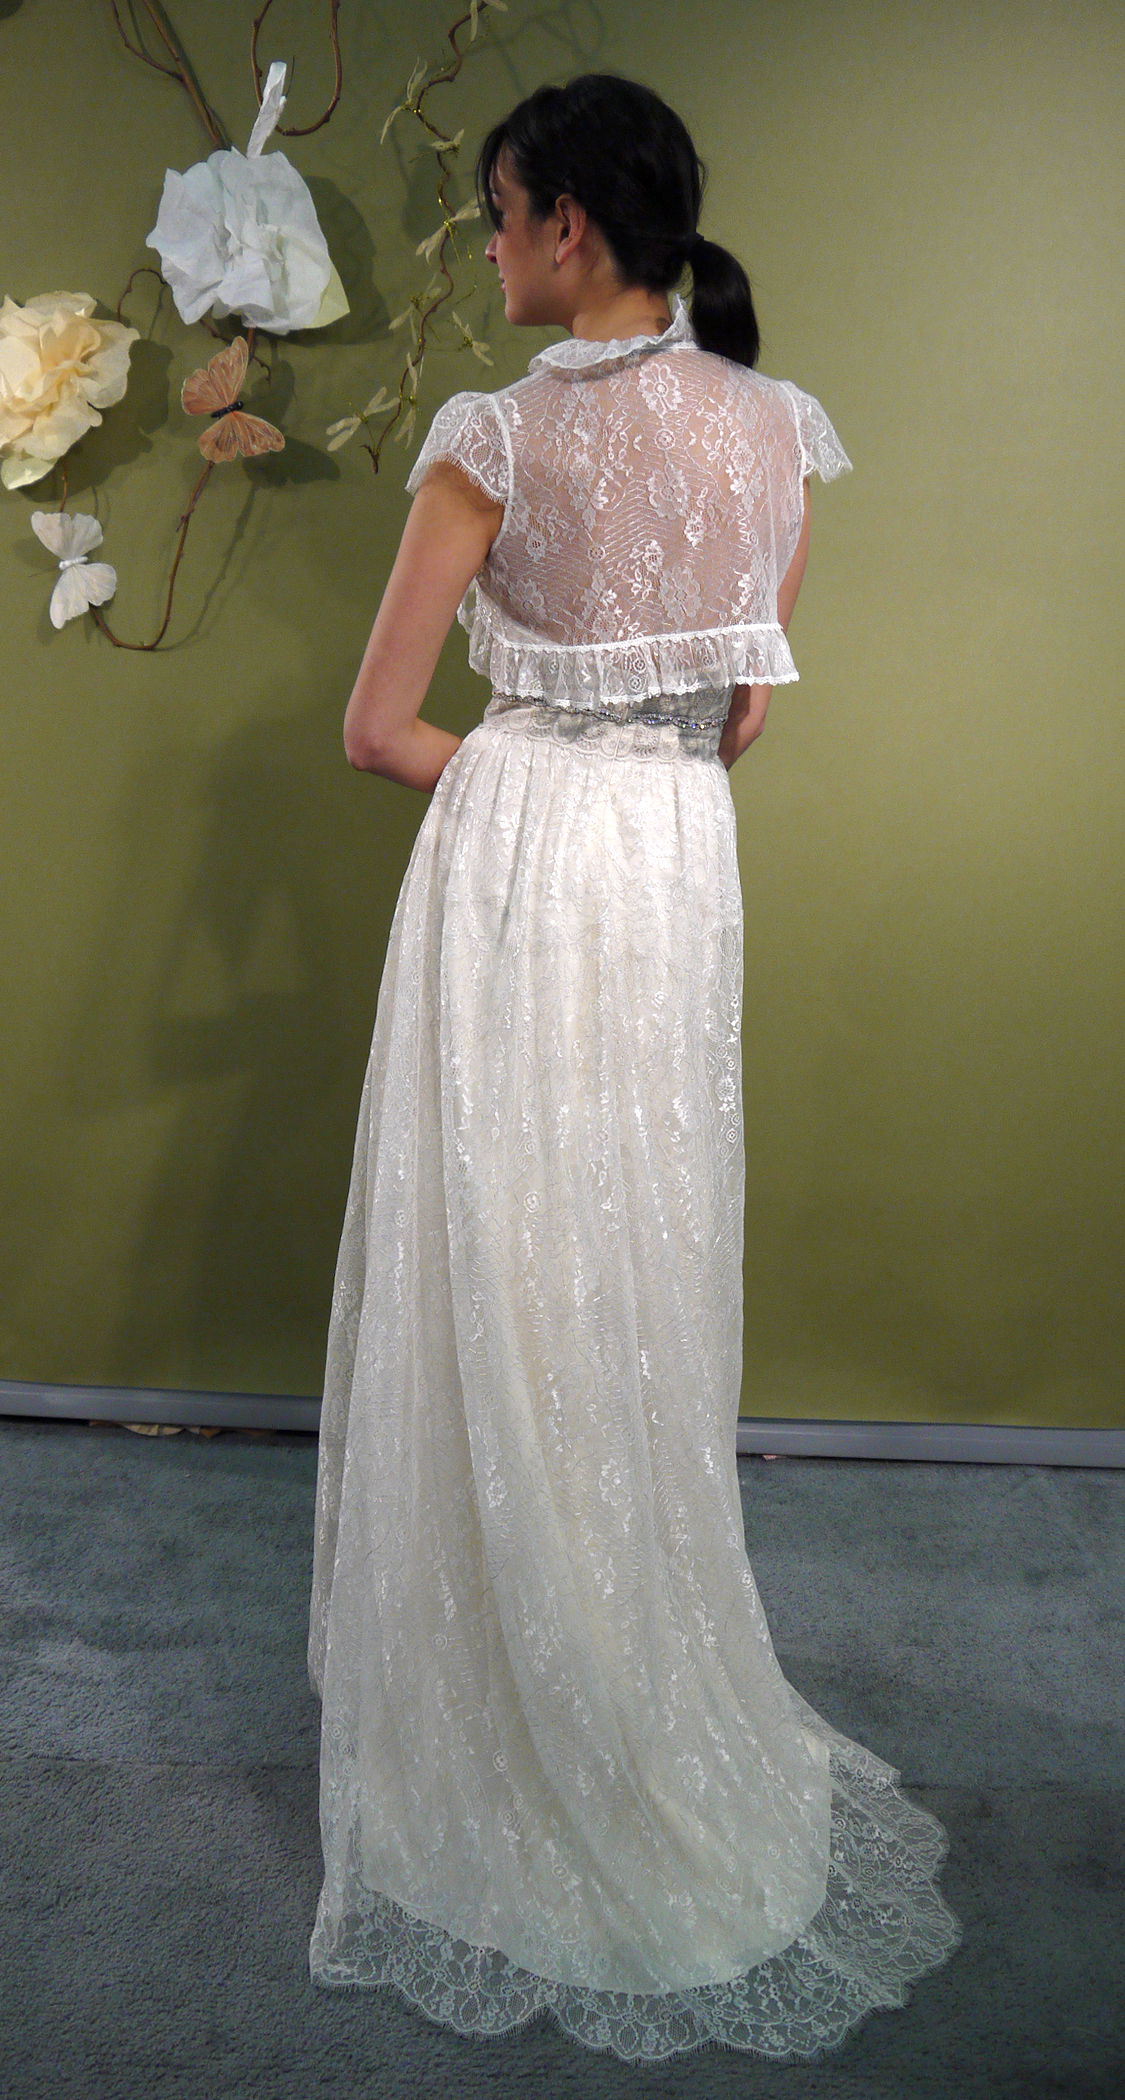 Fall-2011-wedding-dresses-norah-strapless-empire-wedding-dress-beaded-bridal-belt-claire-pettibone-cap-sleeved-bolero-back-large.original